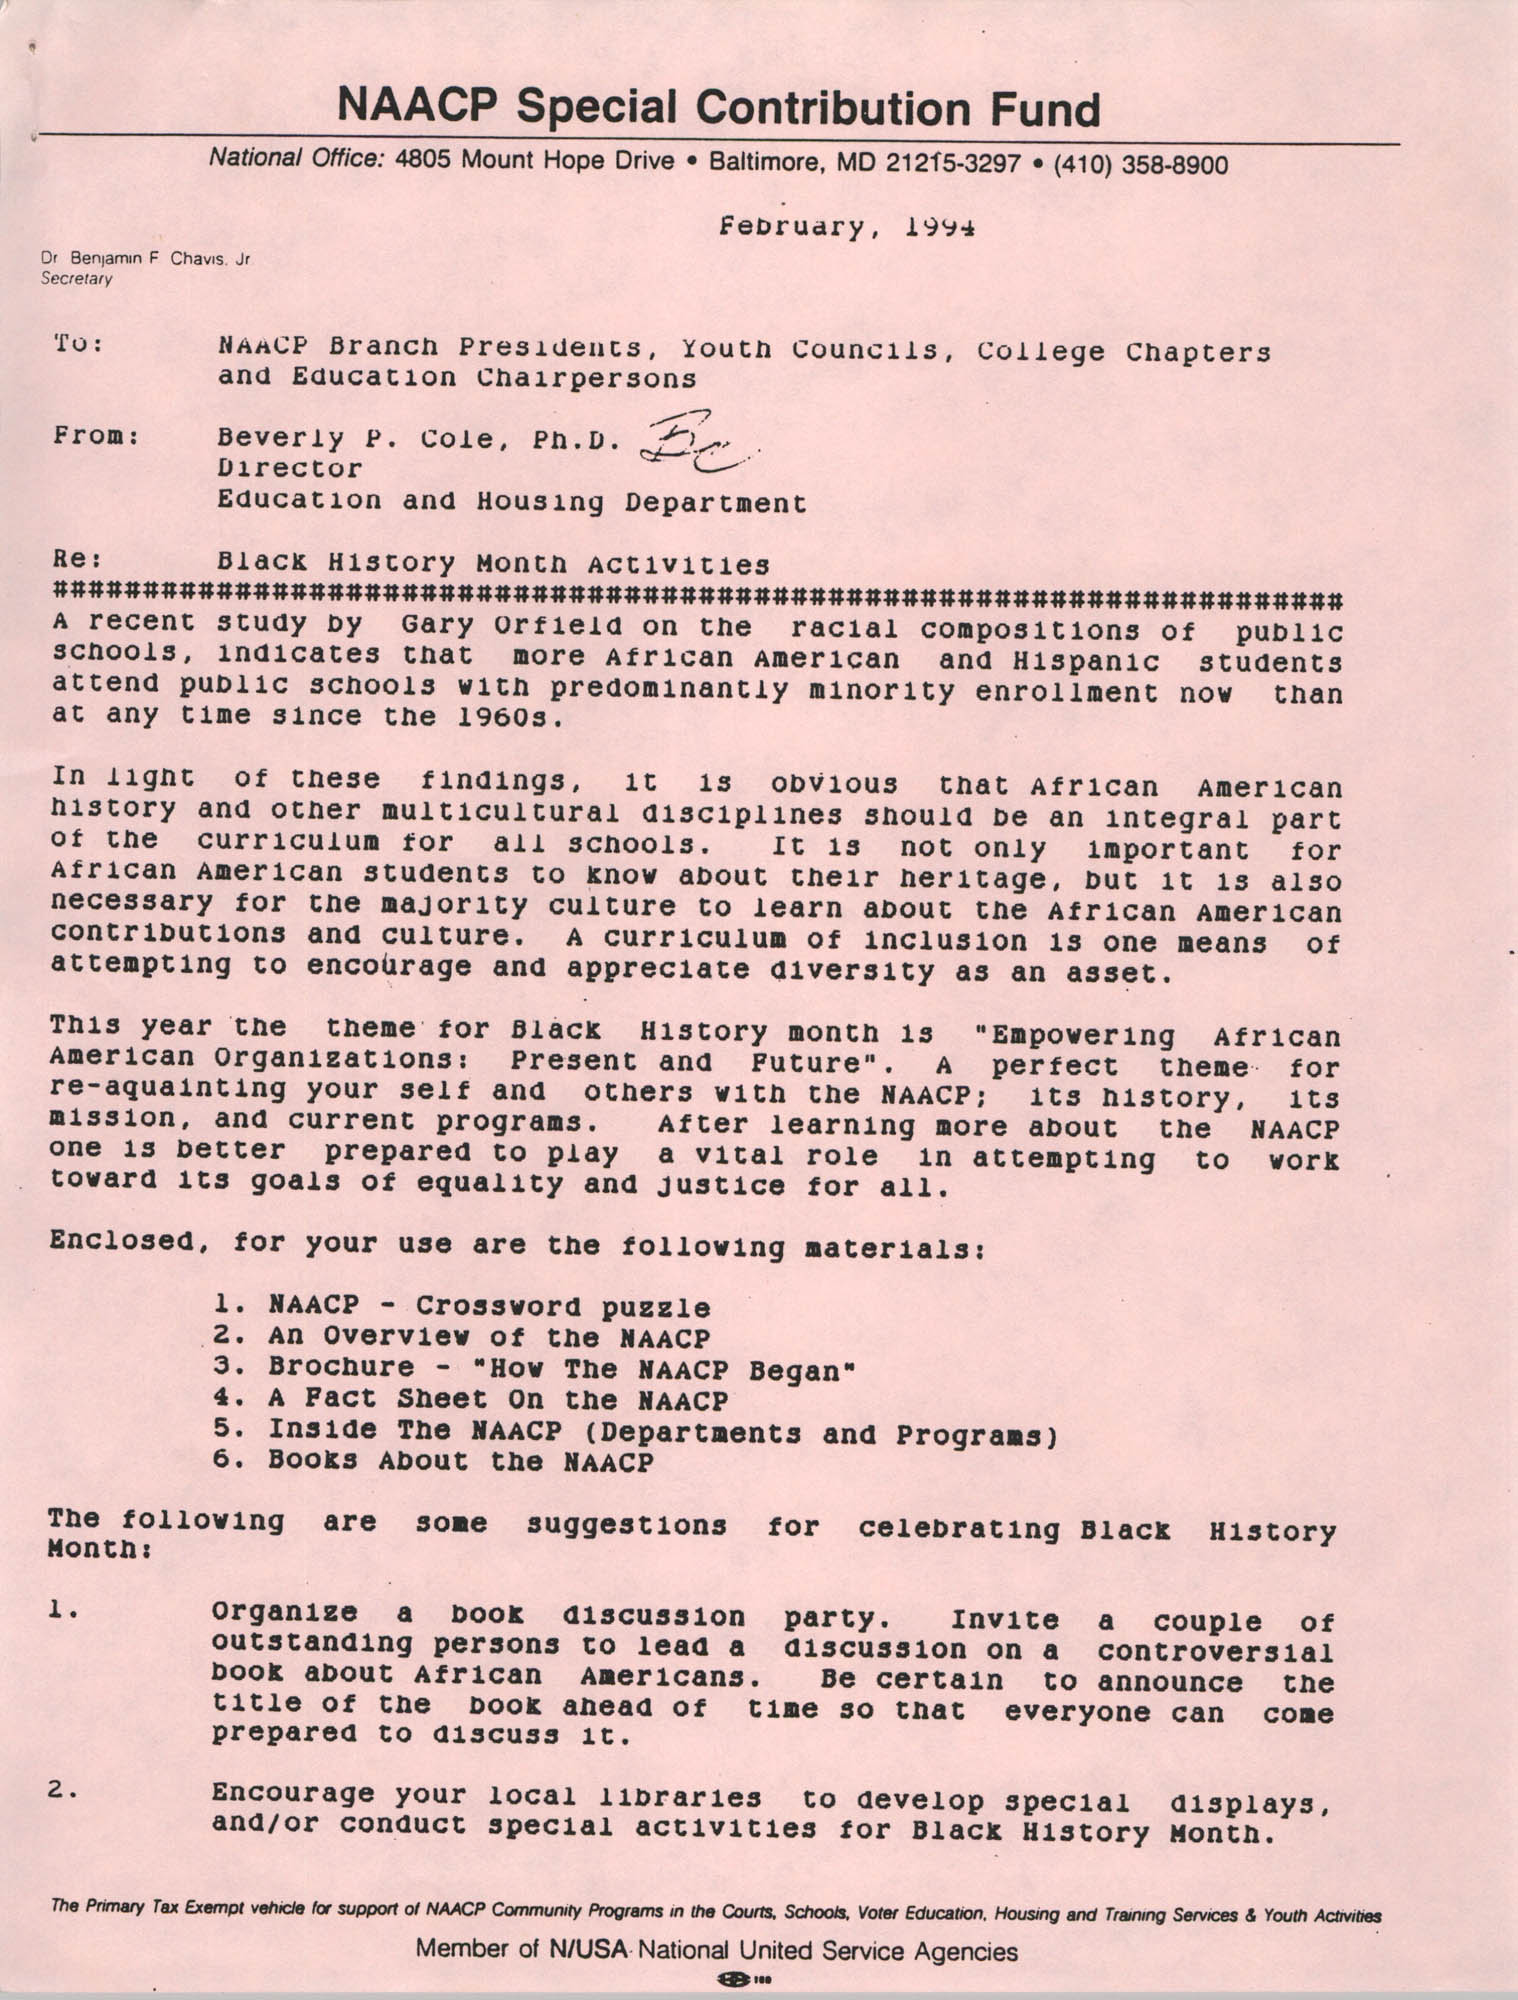 Memorandum, Beverly P. Cole, February 1994